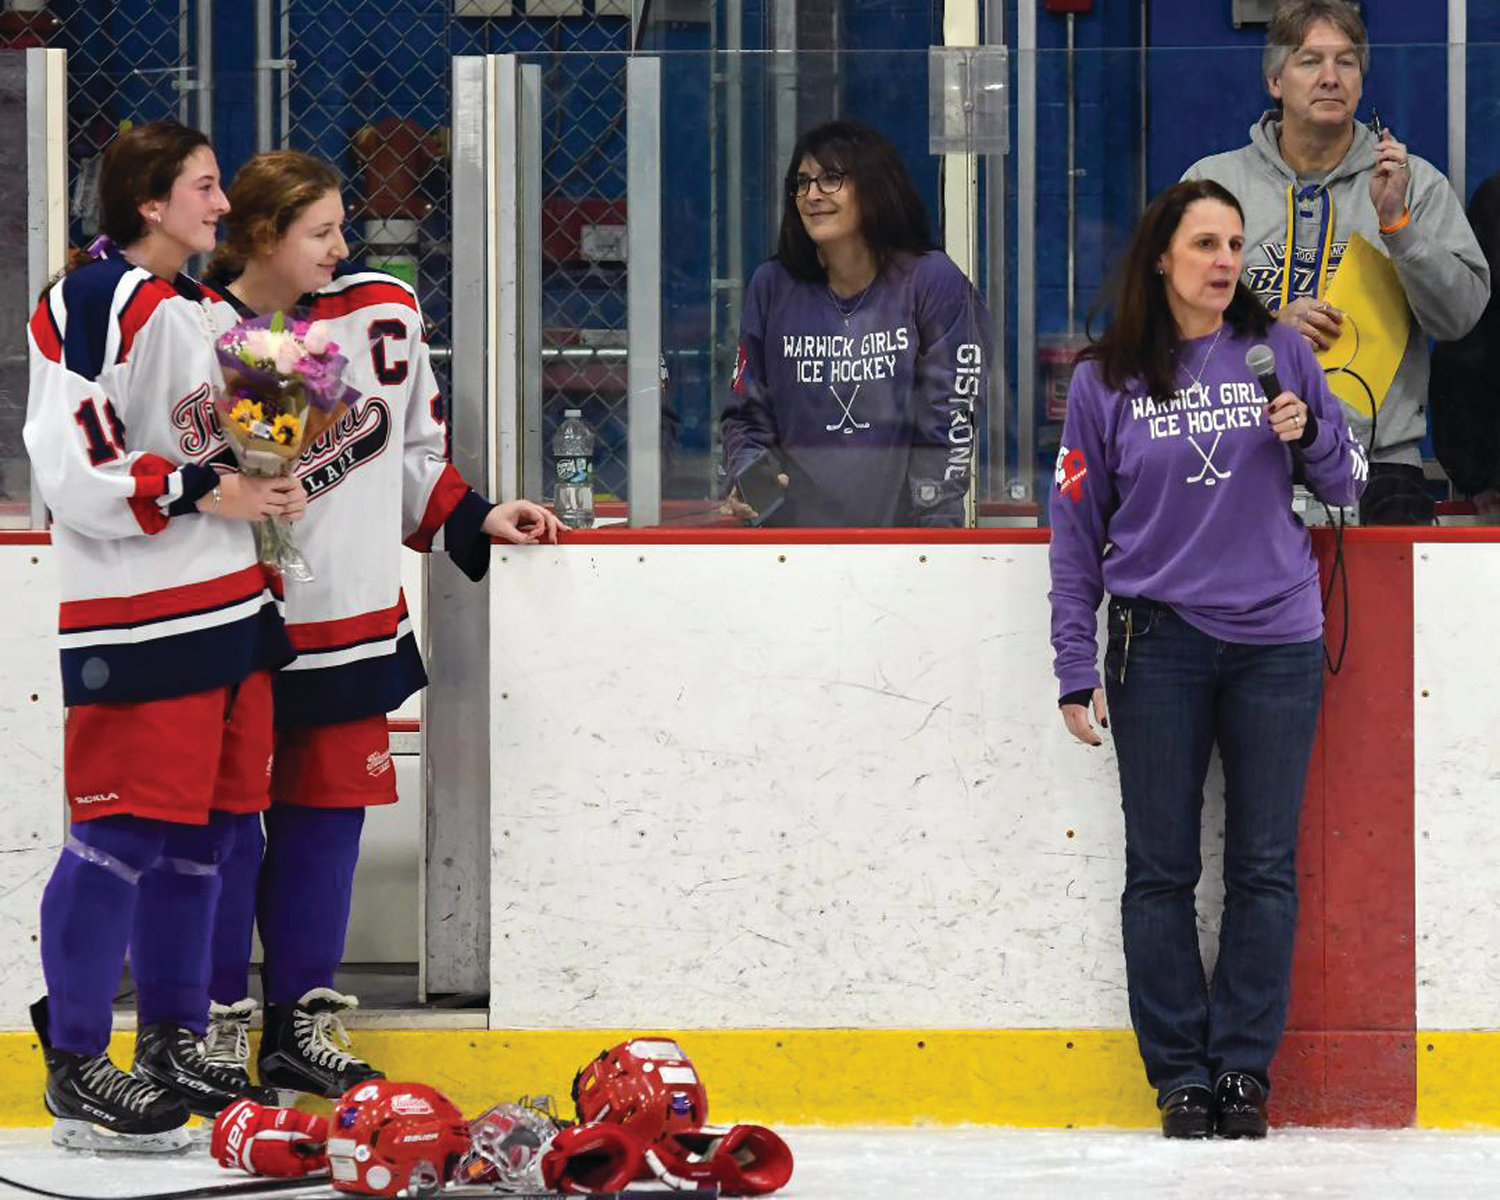 MAKING A STATEMENT: Hope Flaherty and Meaghan McCamish (left) look on as Gianna's mother, Tara, addresses the crowd.